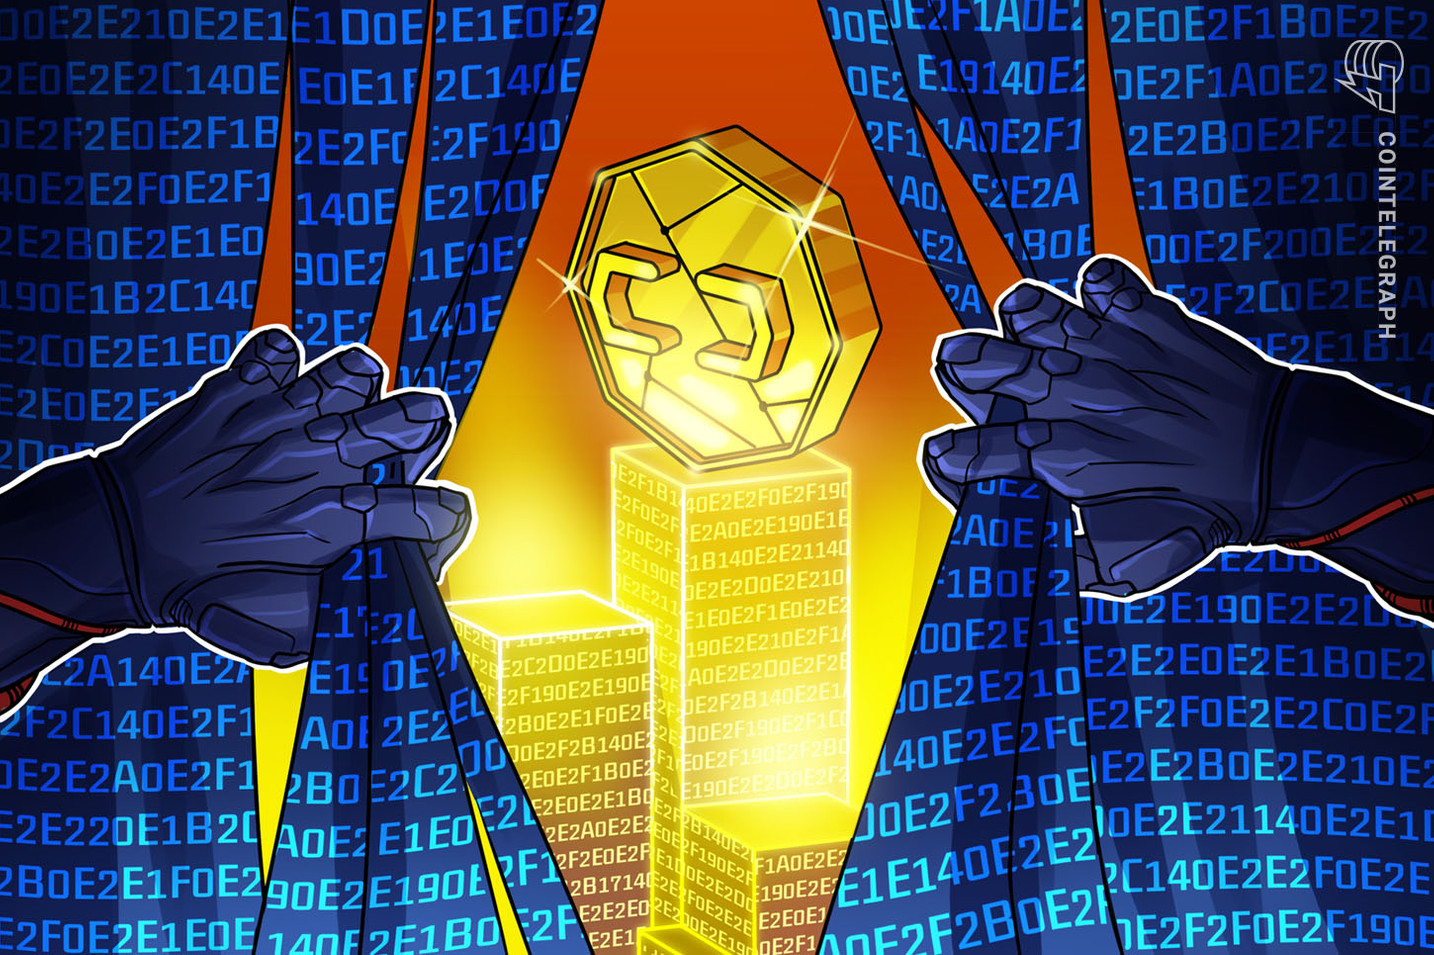 Ukrainian Hacker Caught Selling Government Databases for Crypto